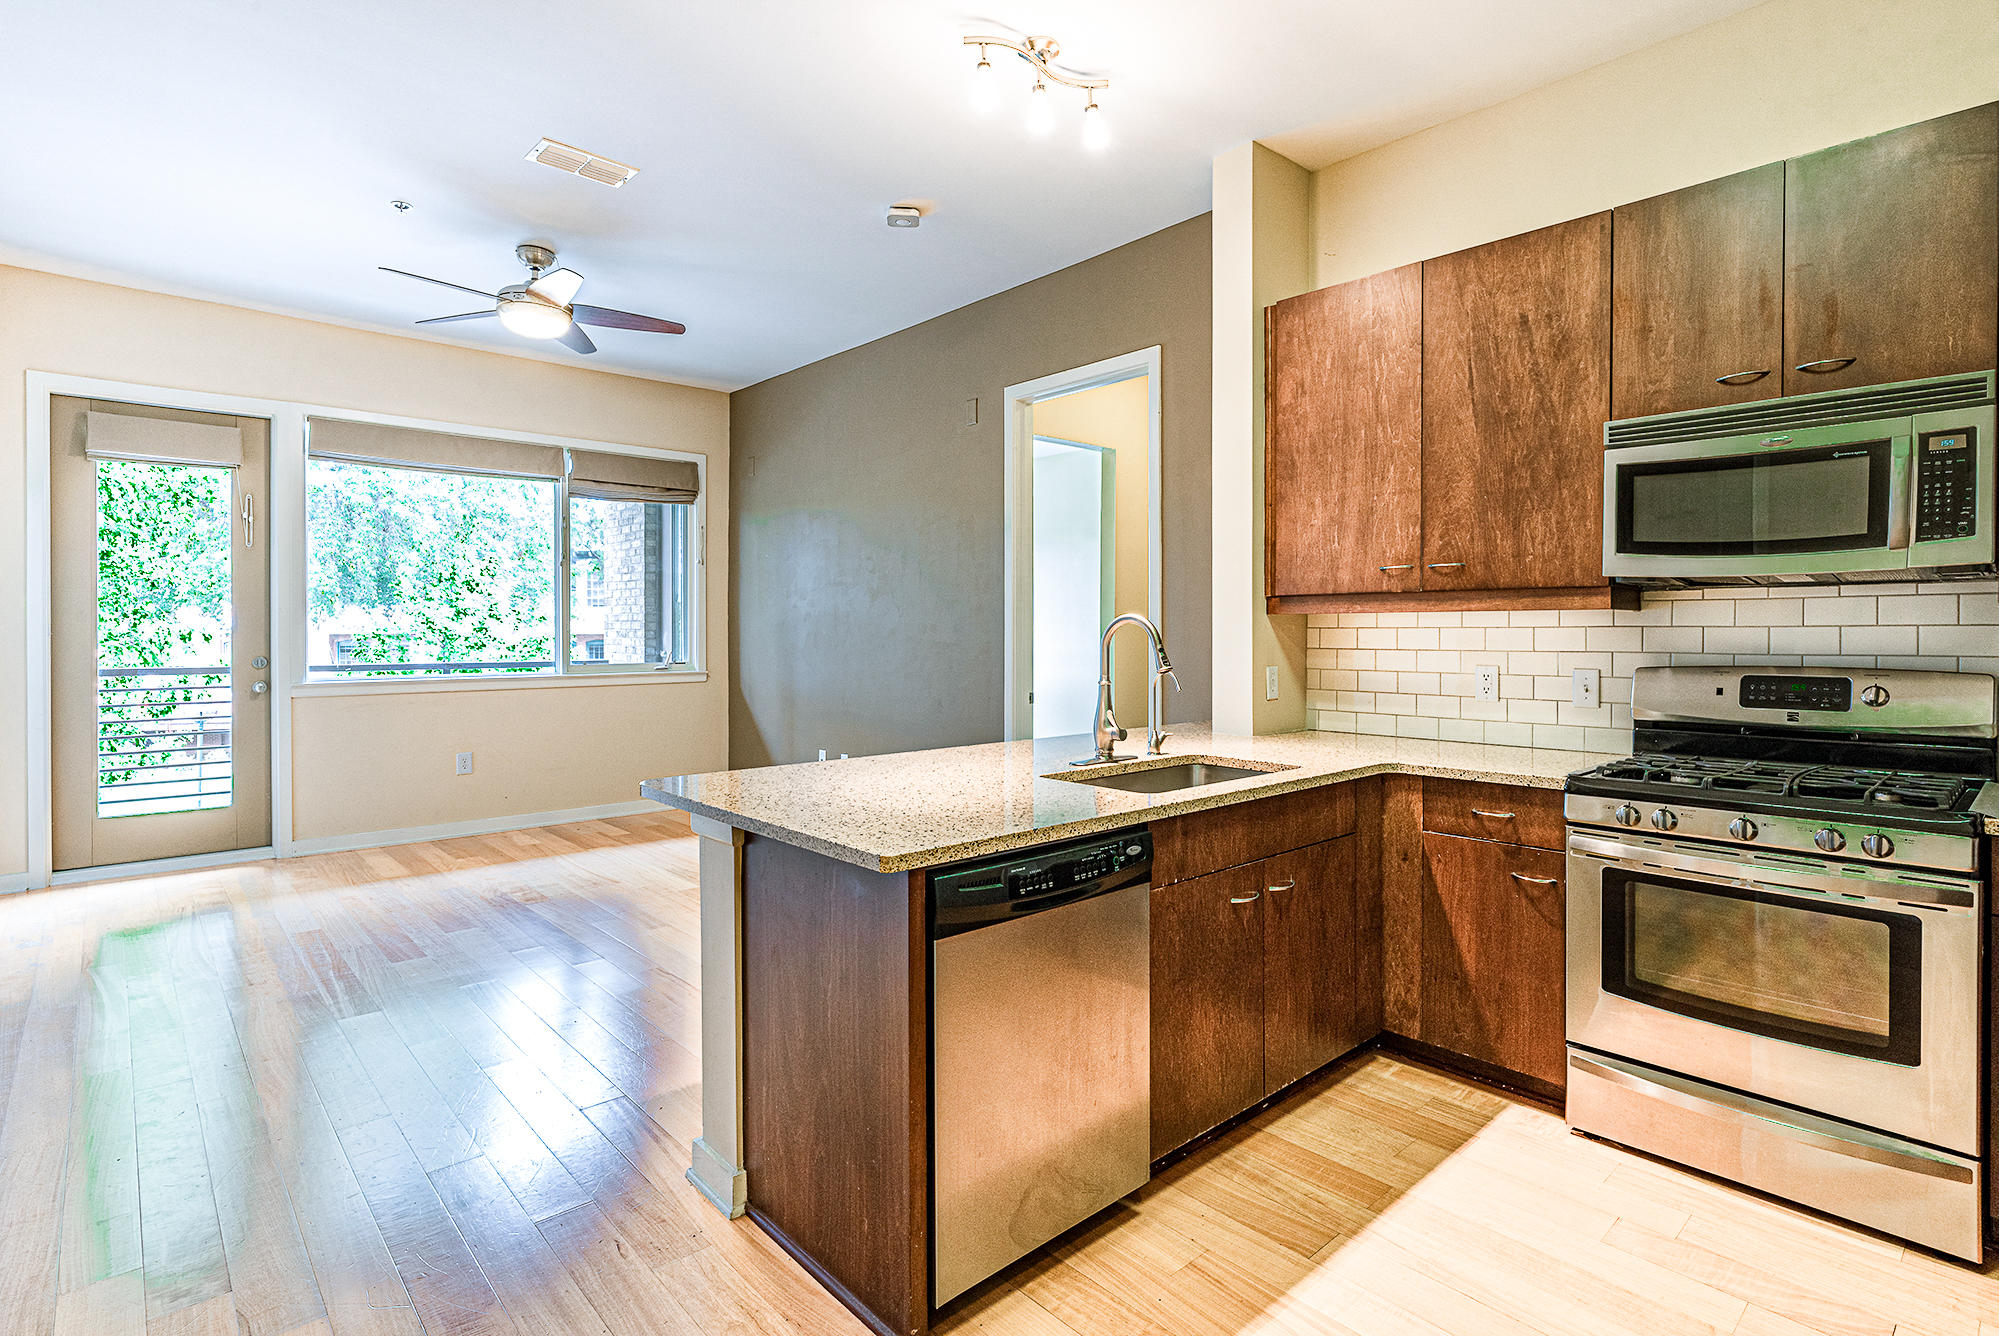 200 Manufacturers Rd Apt 238, Chattanooga, TN 37405